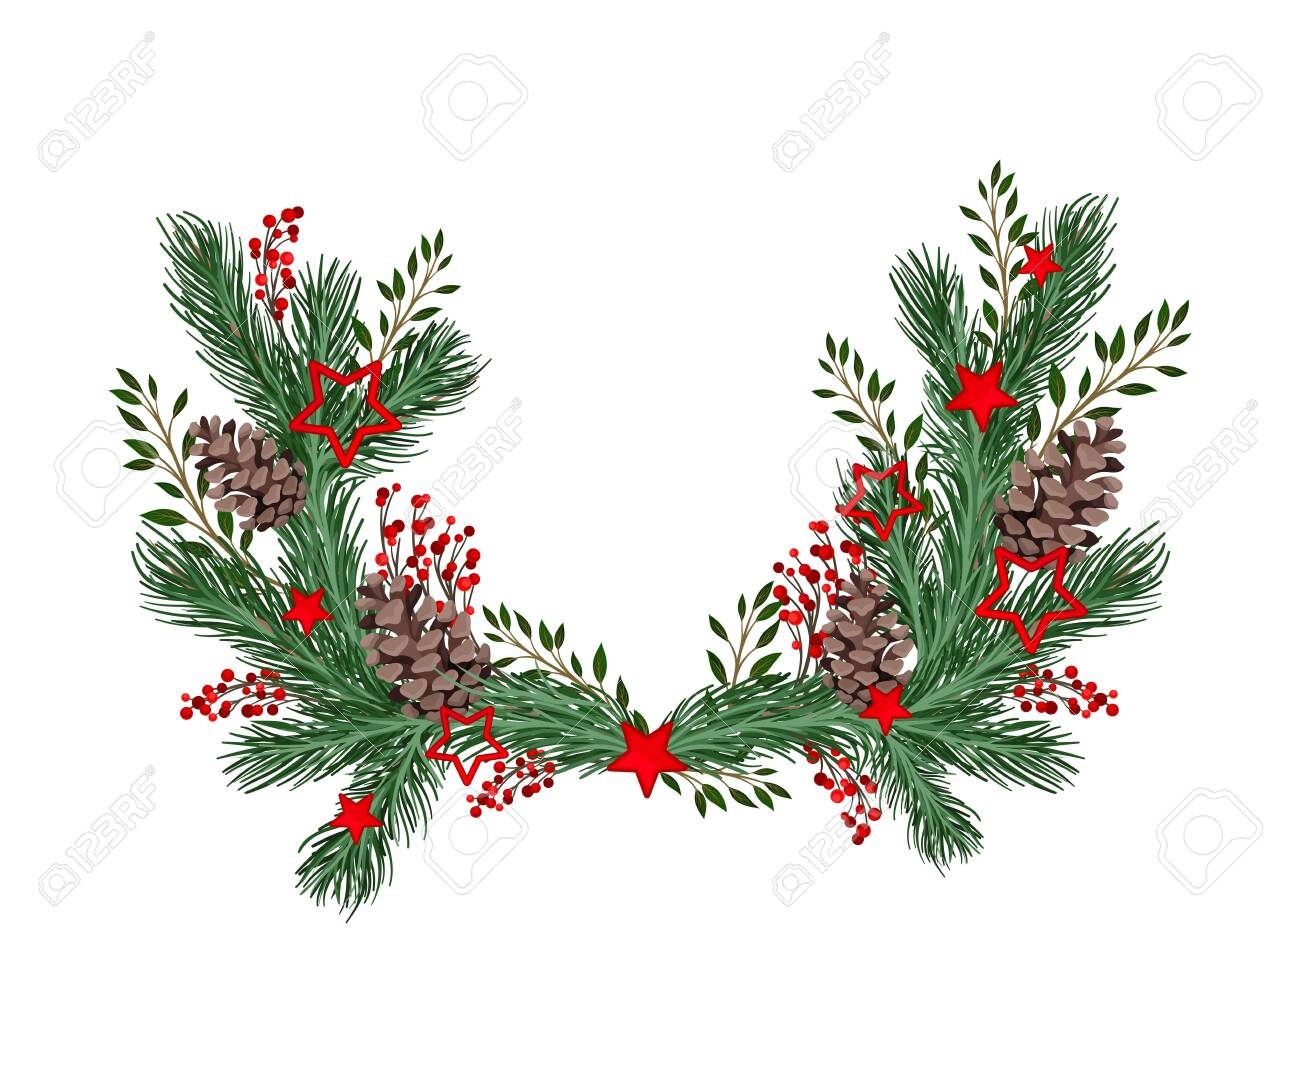 Coniferous Branches Arranged with Berry Twigs and Fir Cones Semicircular Vector Illustration - 156557198